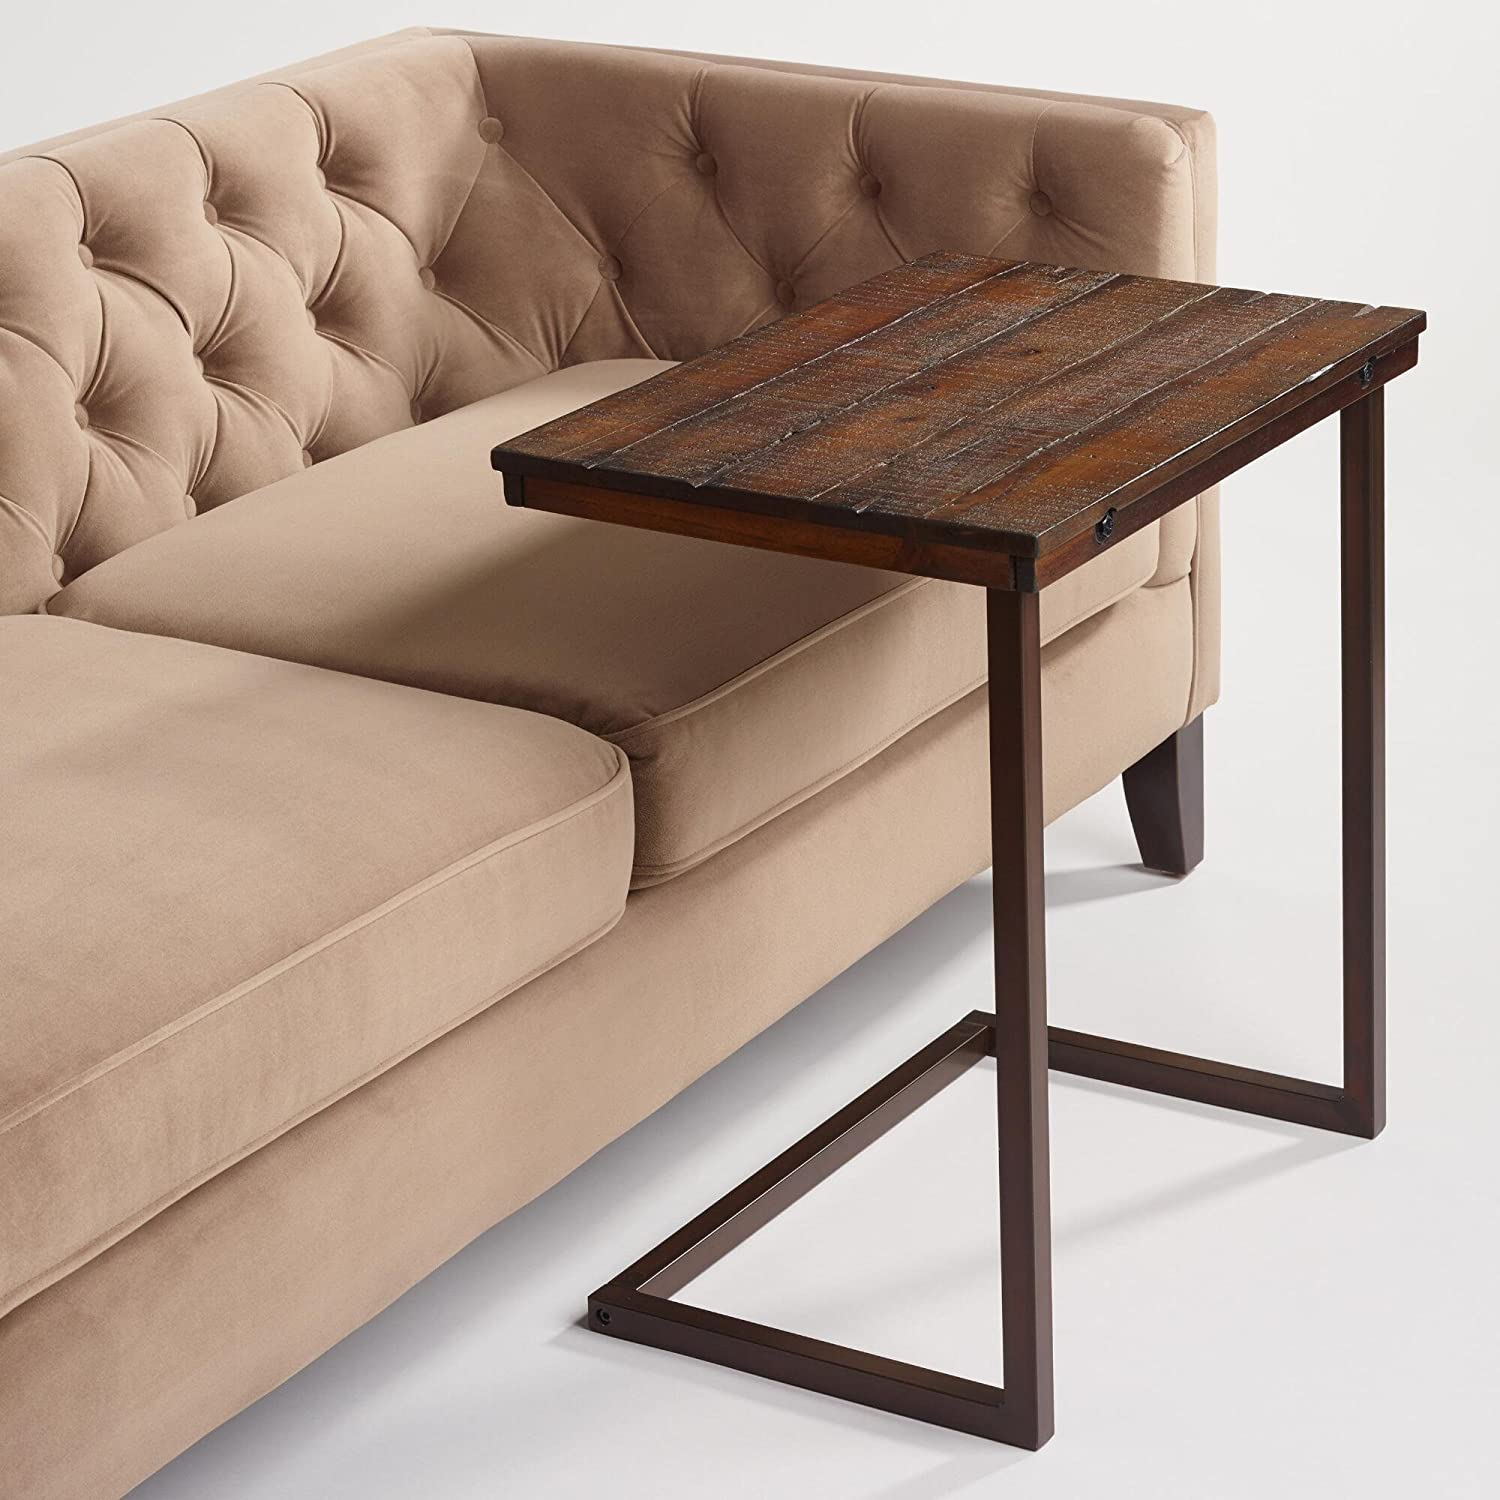 Laptop Table For Couch Chair Bed